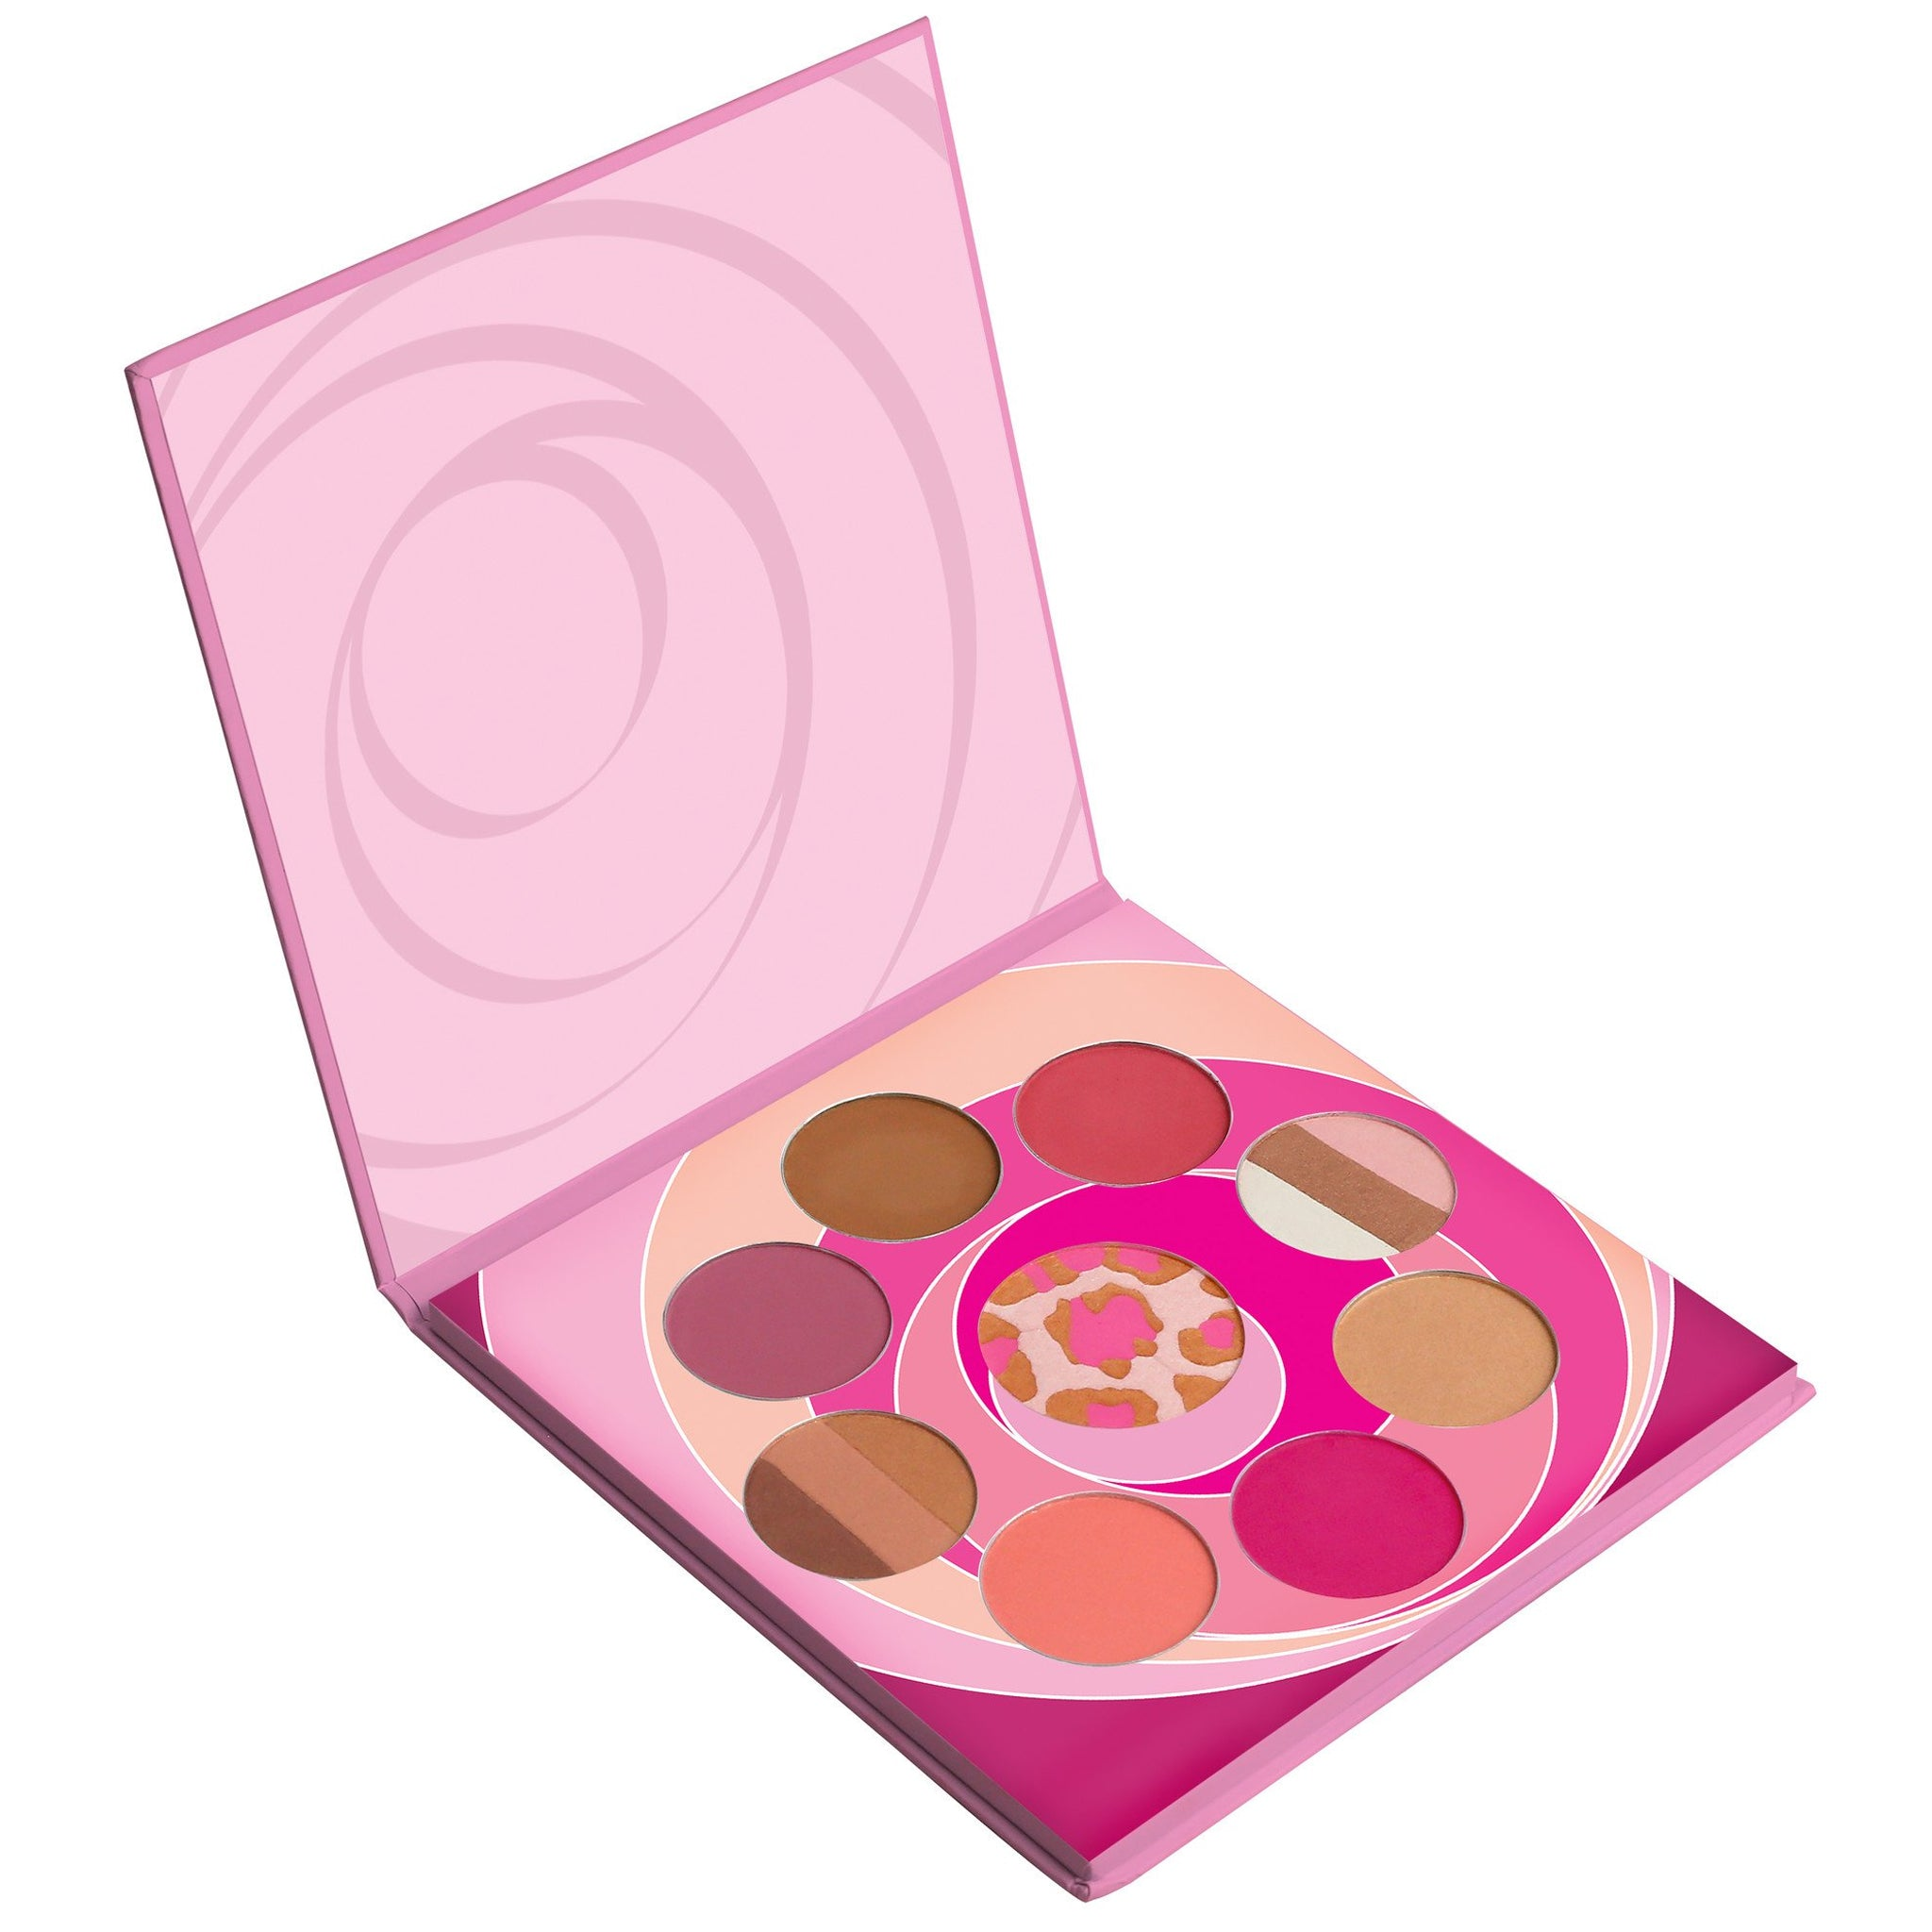 Makeup Palette-  Bronzer - Blush and Bronzer Palette By Coastal Scents